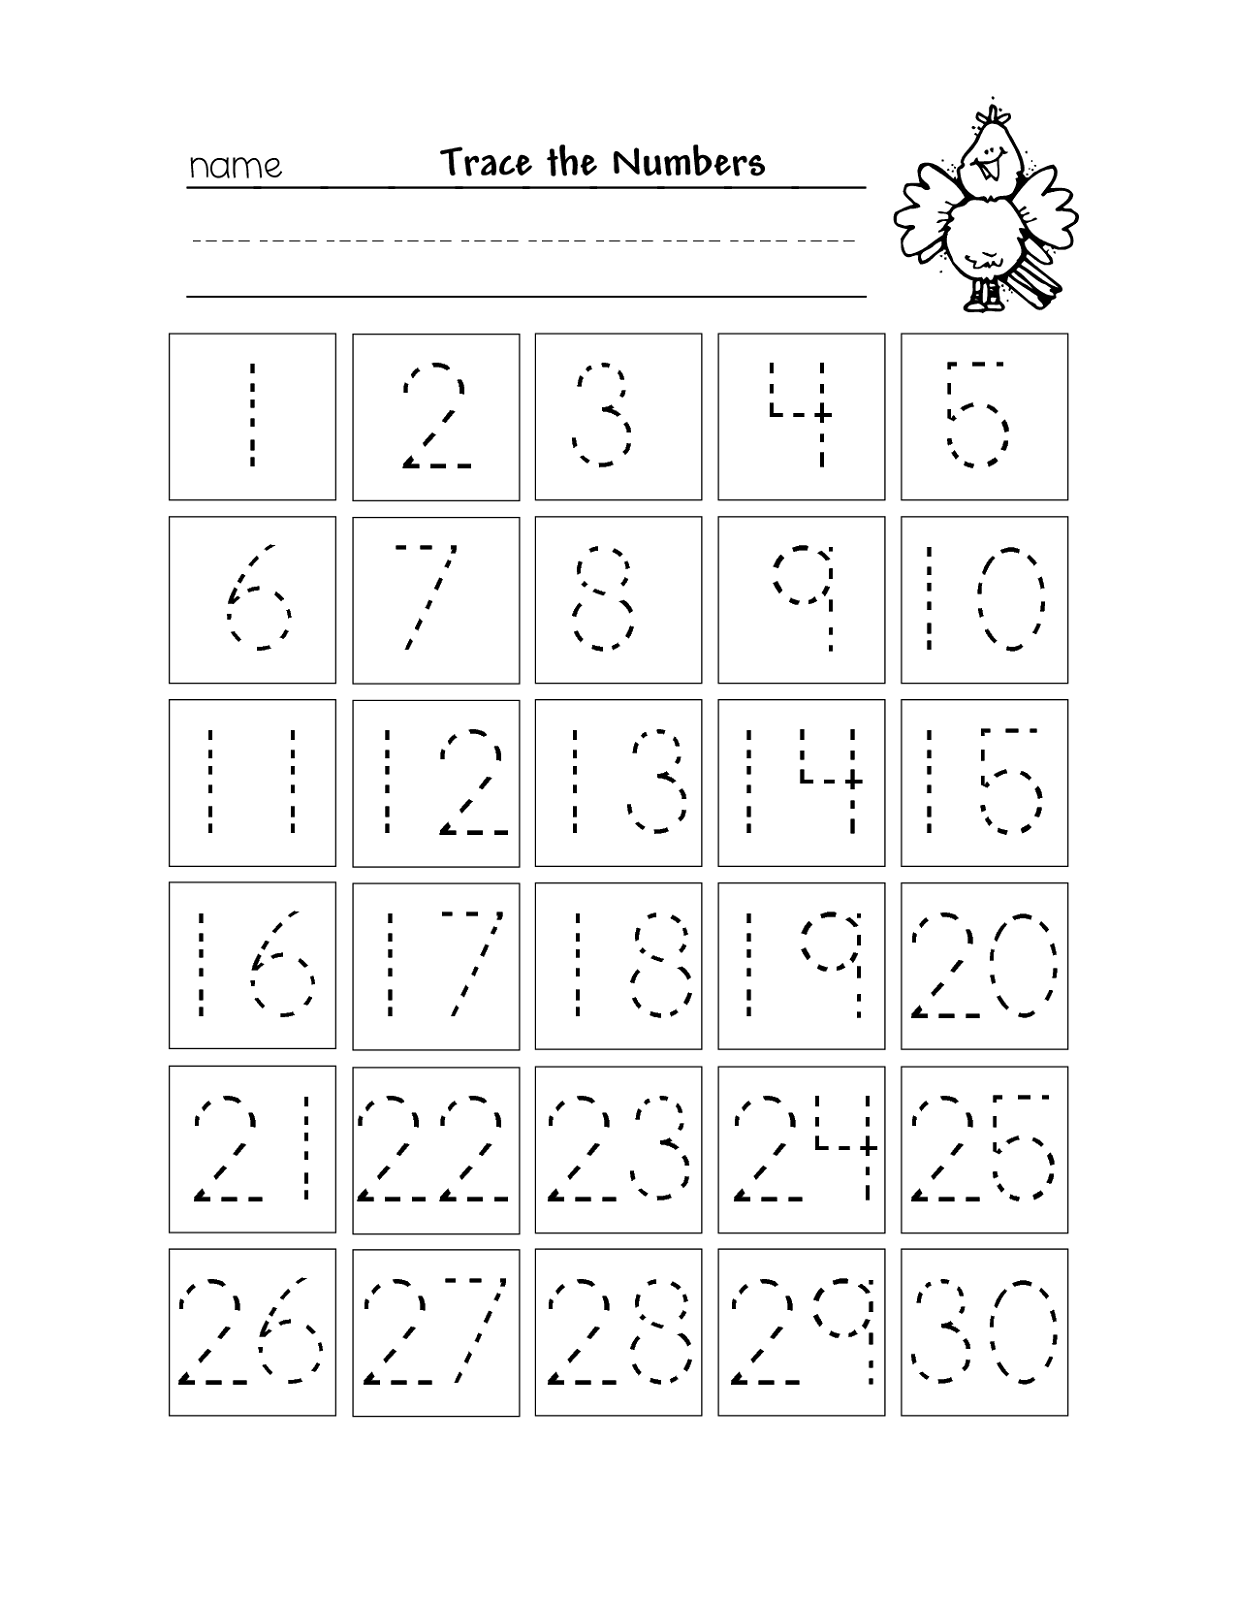 picture regarding Printable Tracing Numbers called No cost Printable Variety Chart 1-30 Kinder Variety tracing